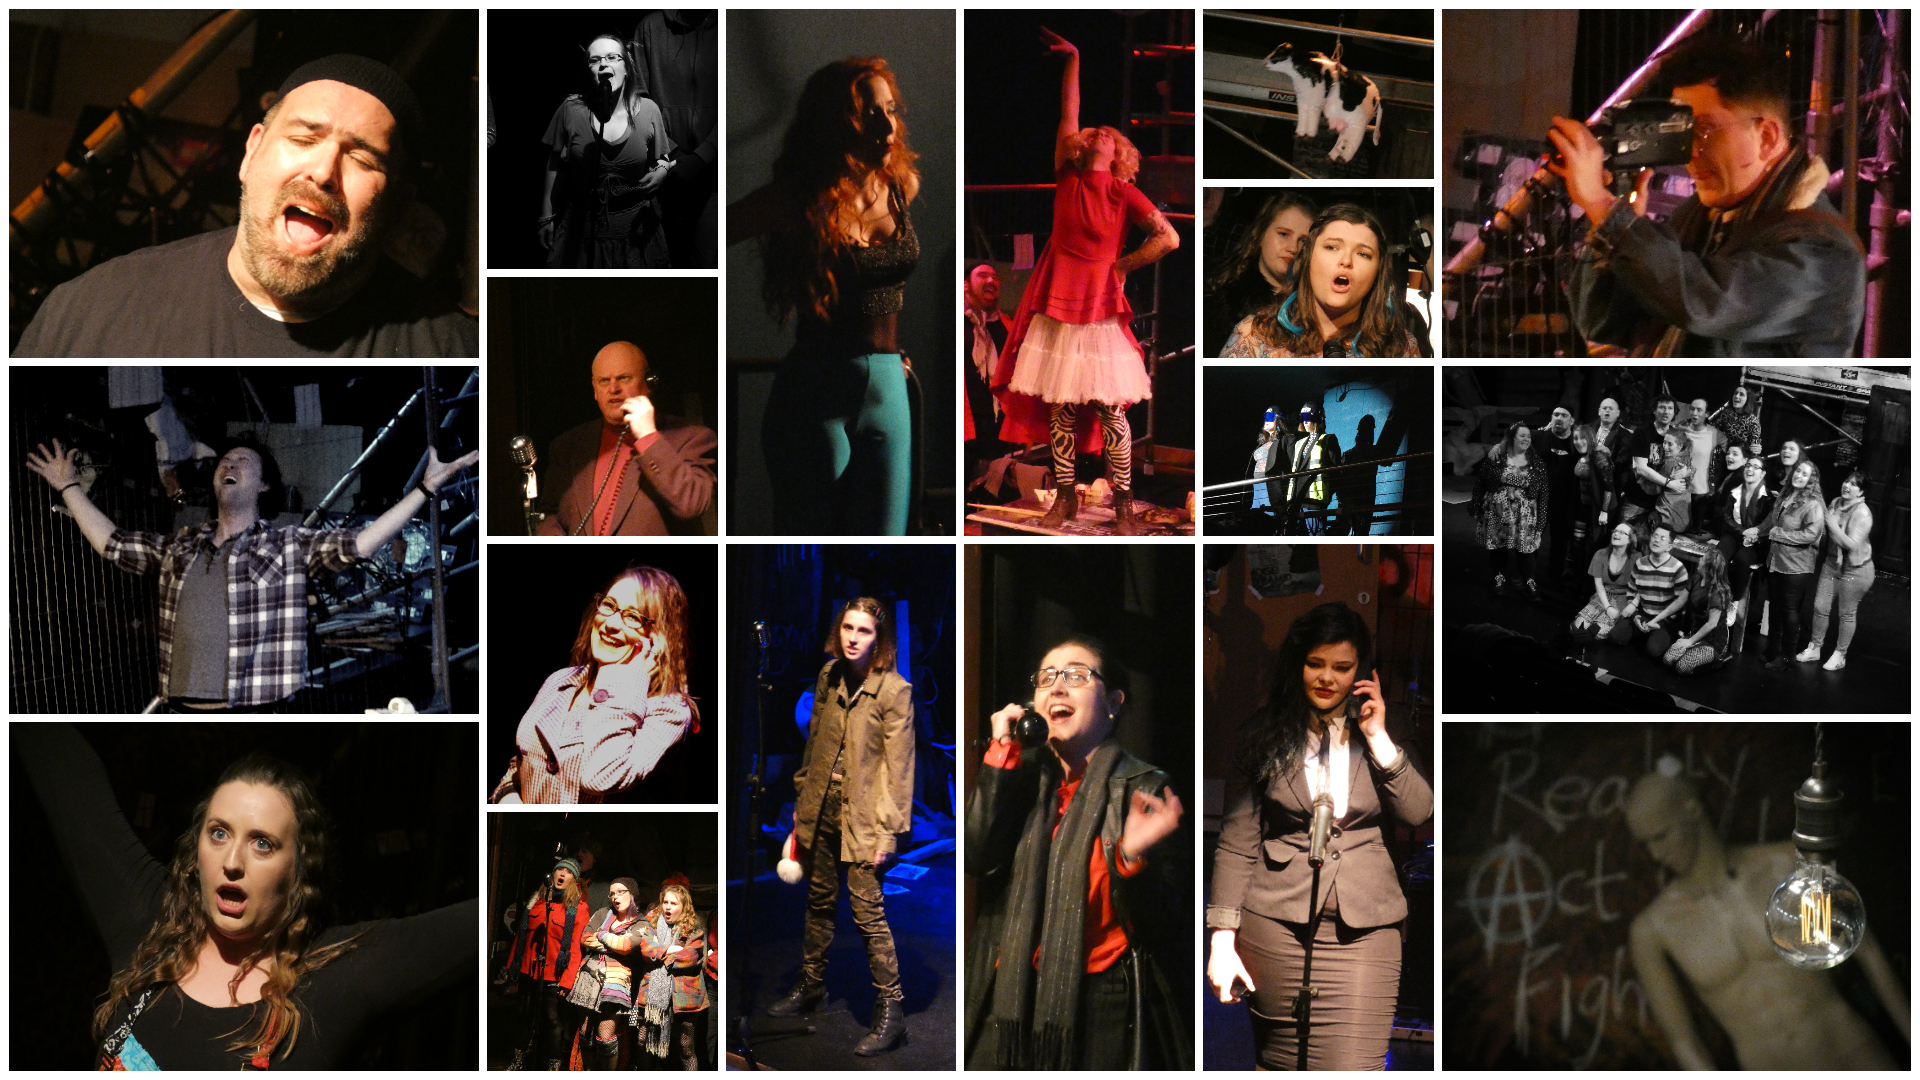 Rent at the Arc Theatre - montage by Gail Foster